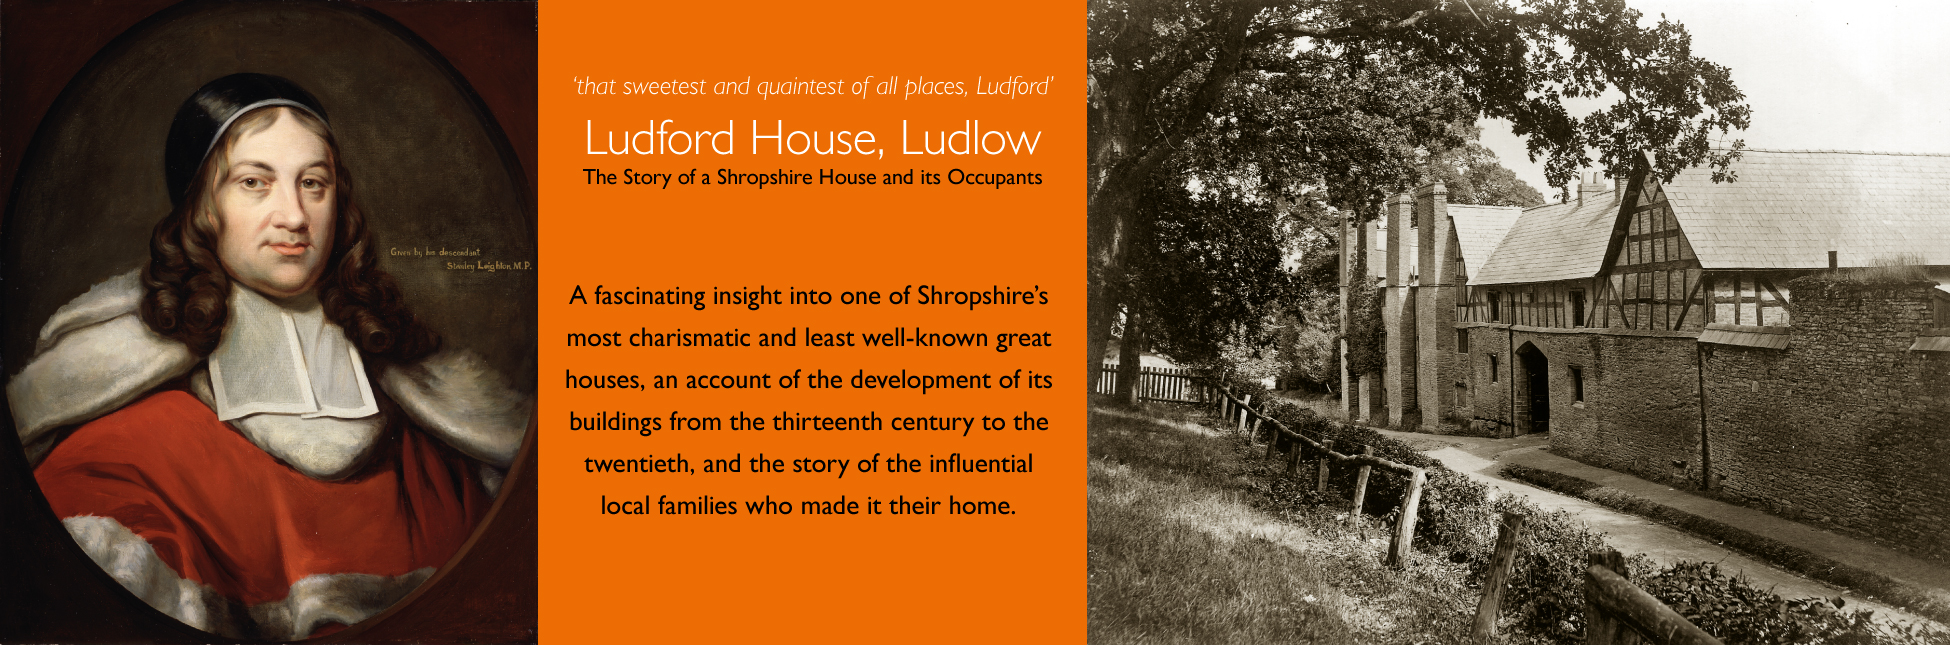 Ludford House banner